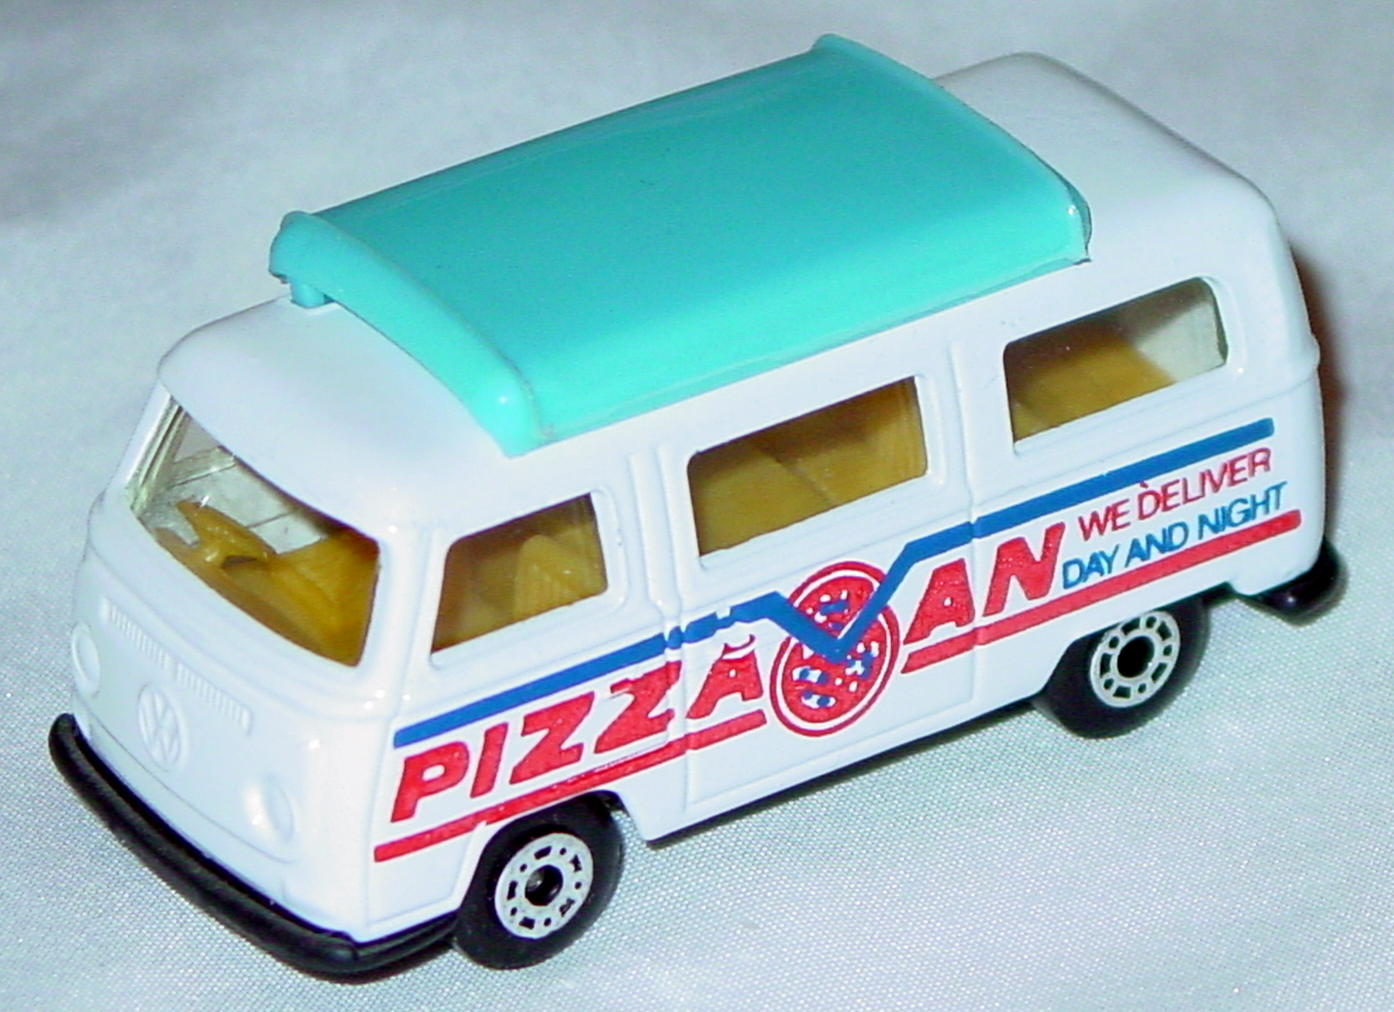 Hungarian 23 A 13 - Pizza Van White blue top black base red and dark blue tampo